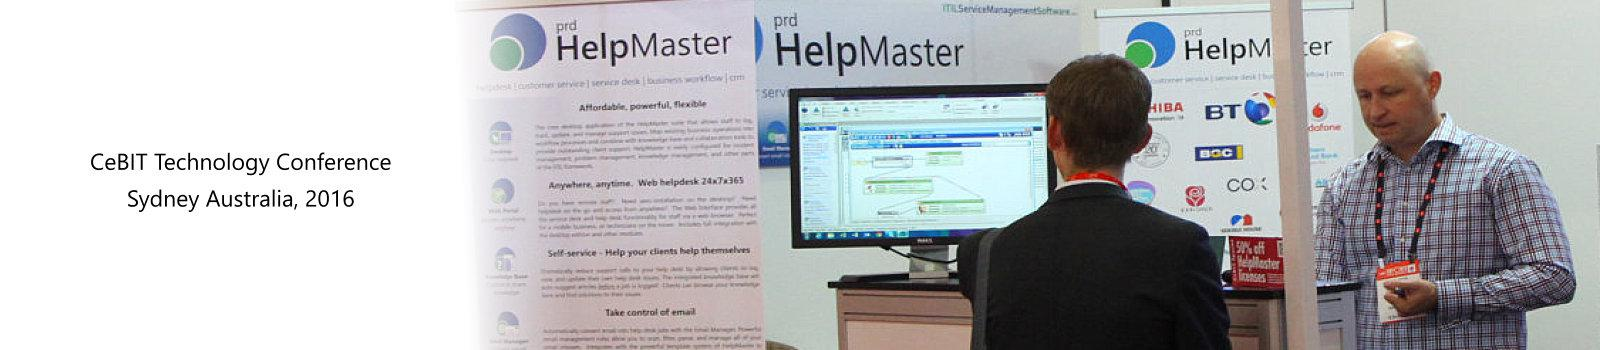 HelpMaster ITSM Software